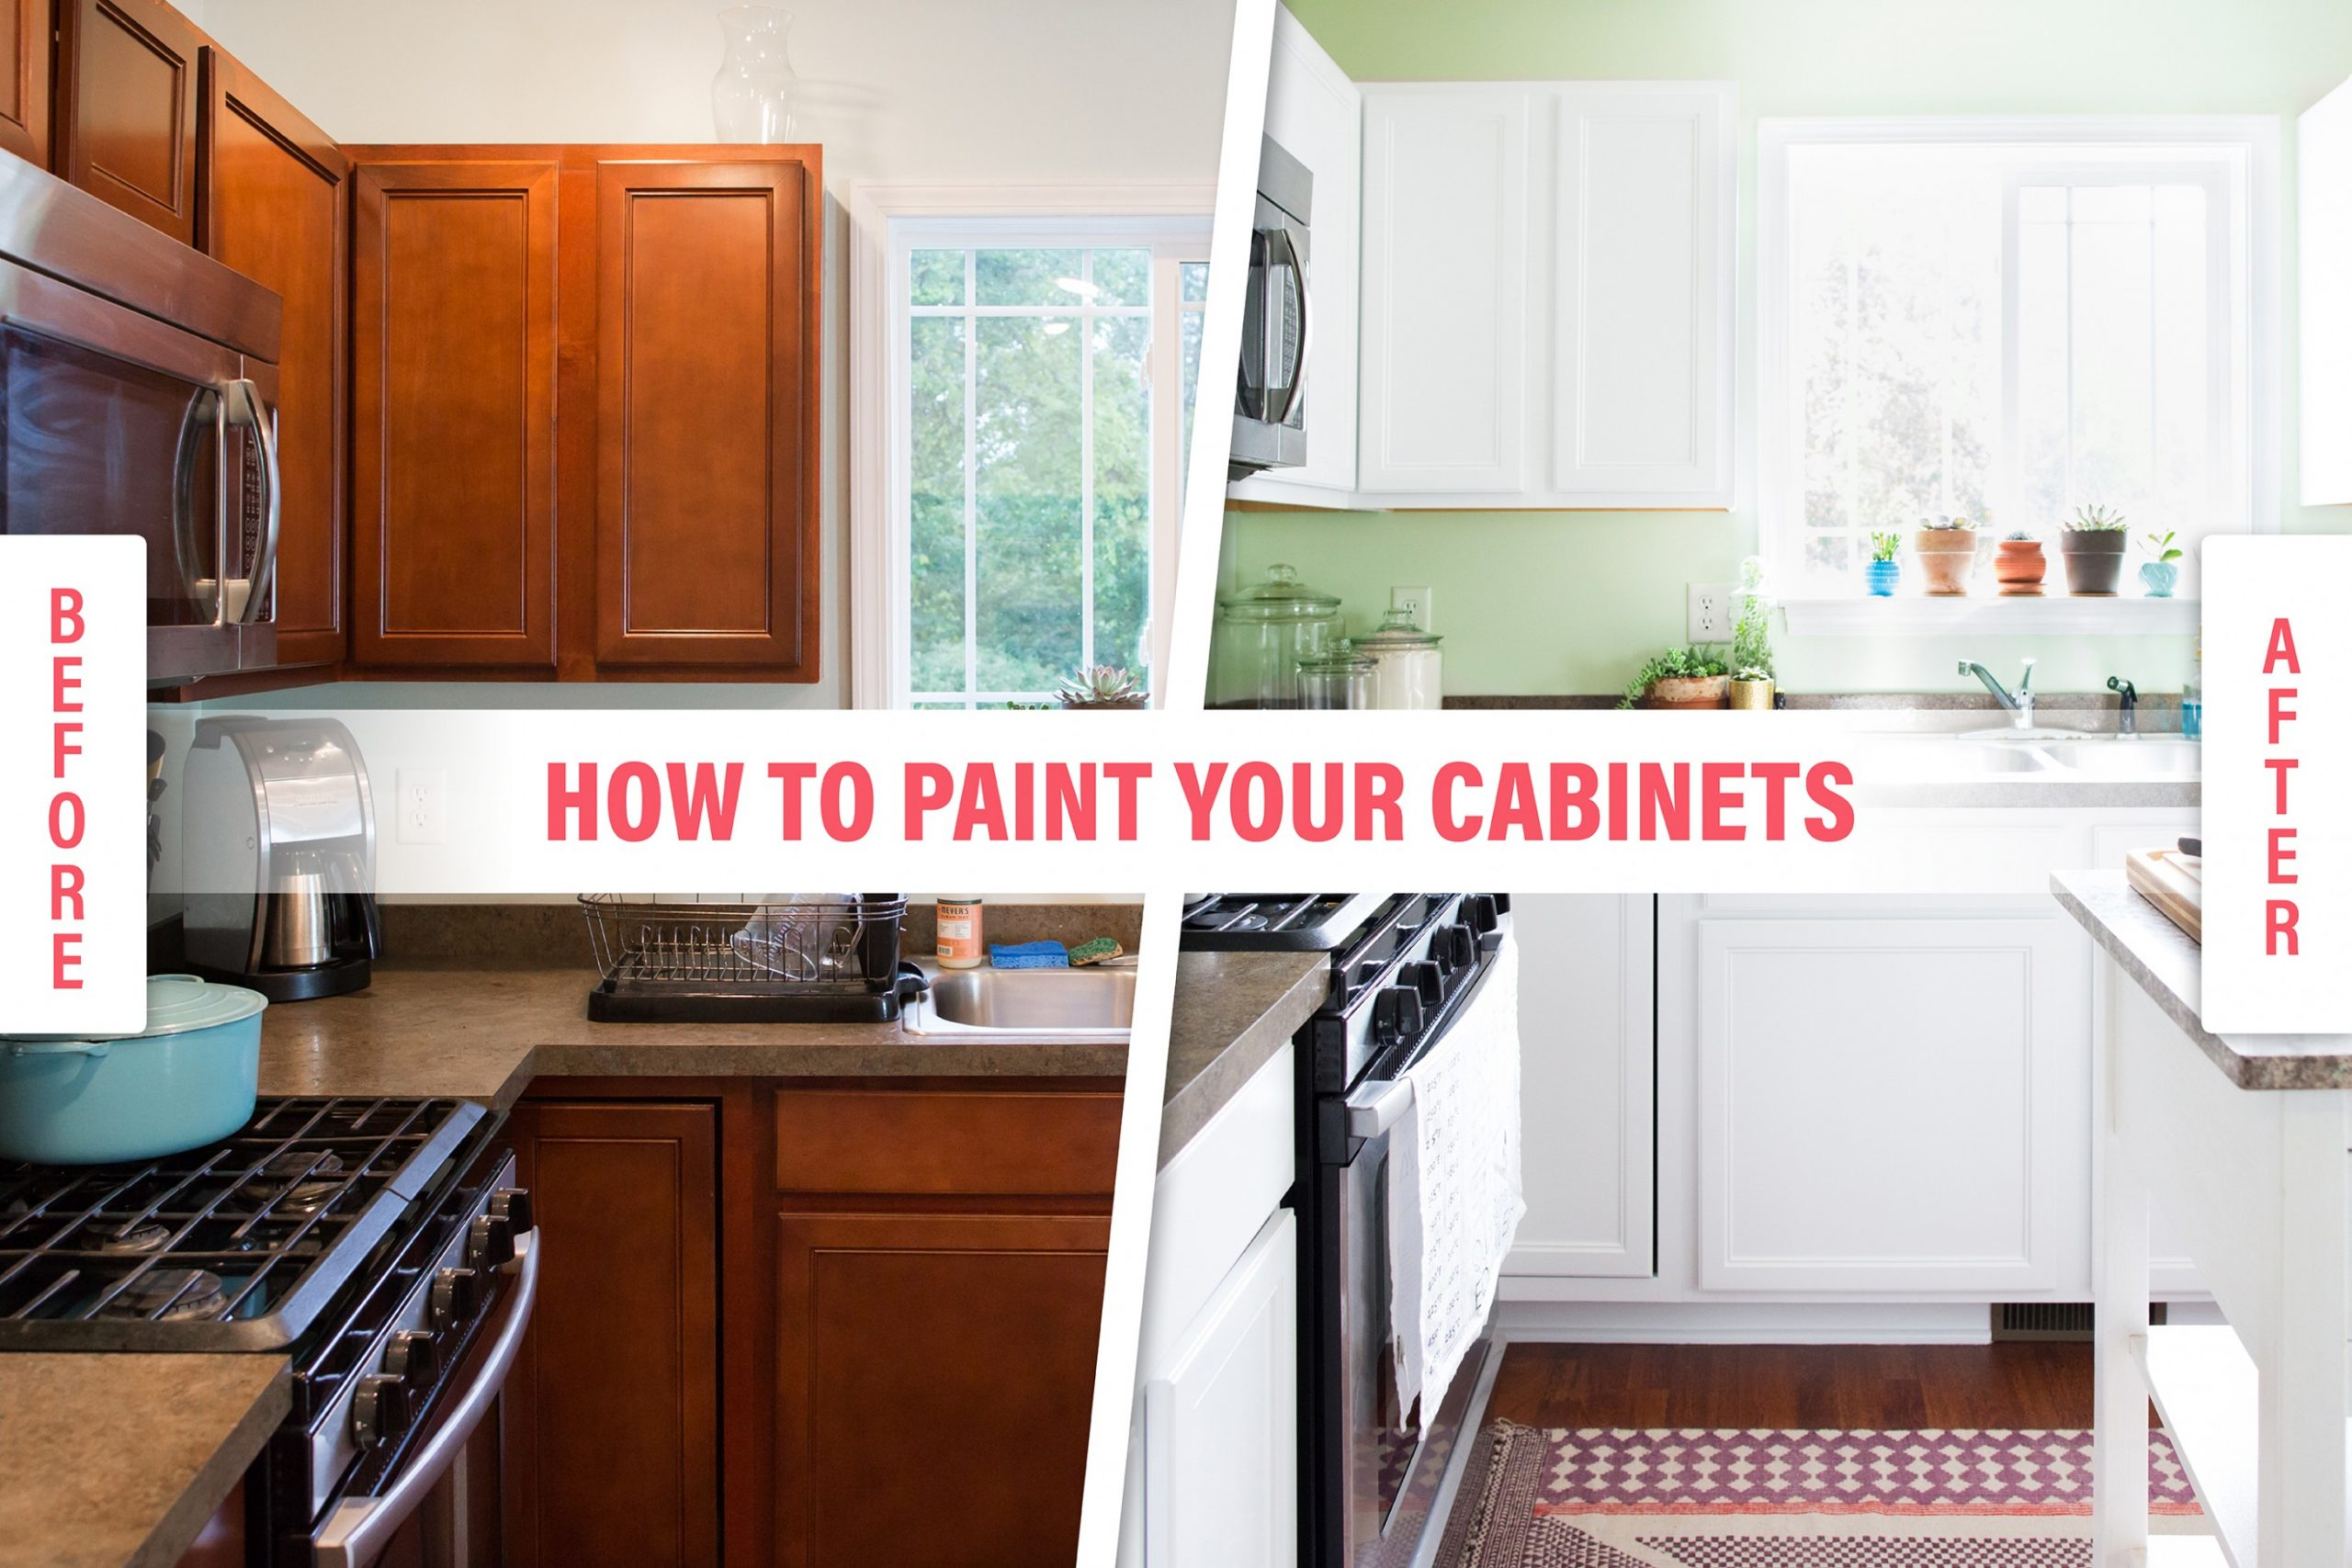 How To Paint Wood Kitchen Cabinets with White Paint  Kitchn - Is It Possible To Paint Kitchen Cabinets